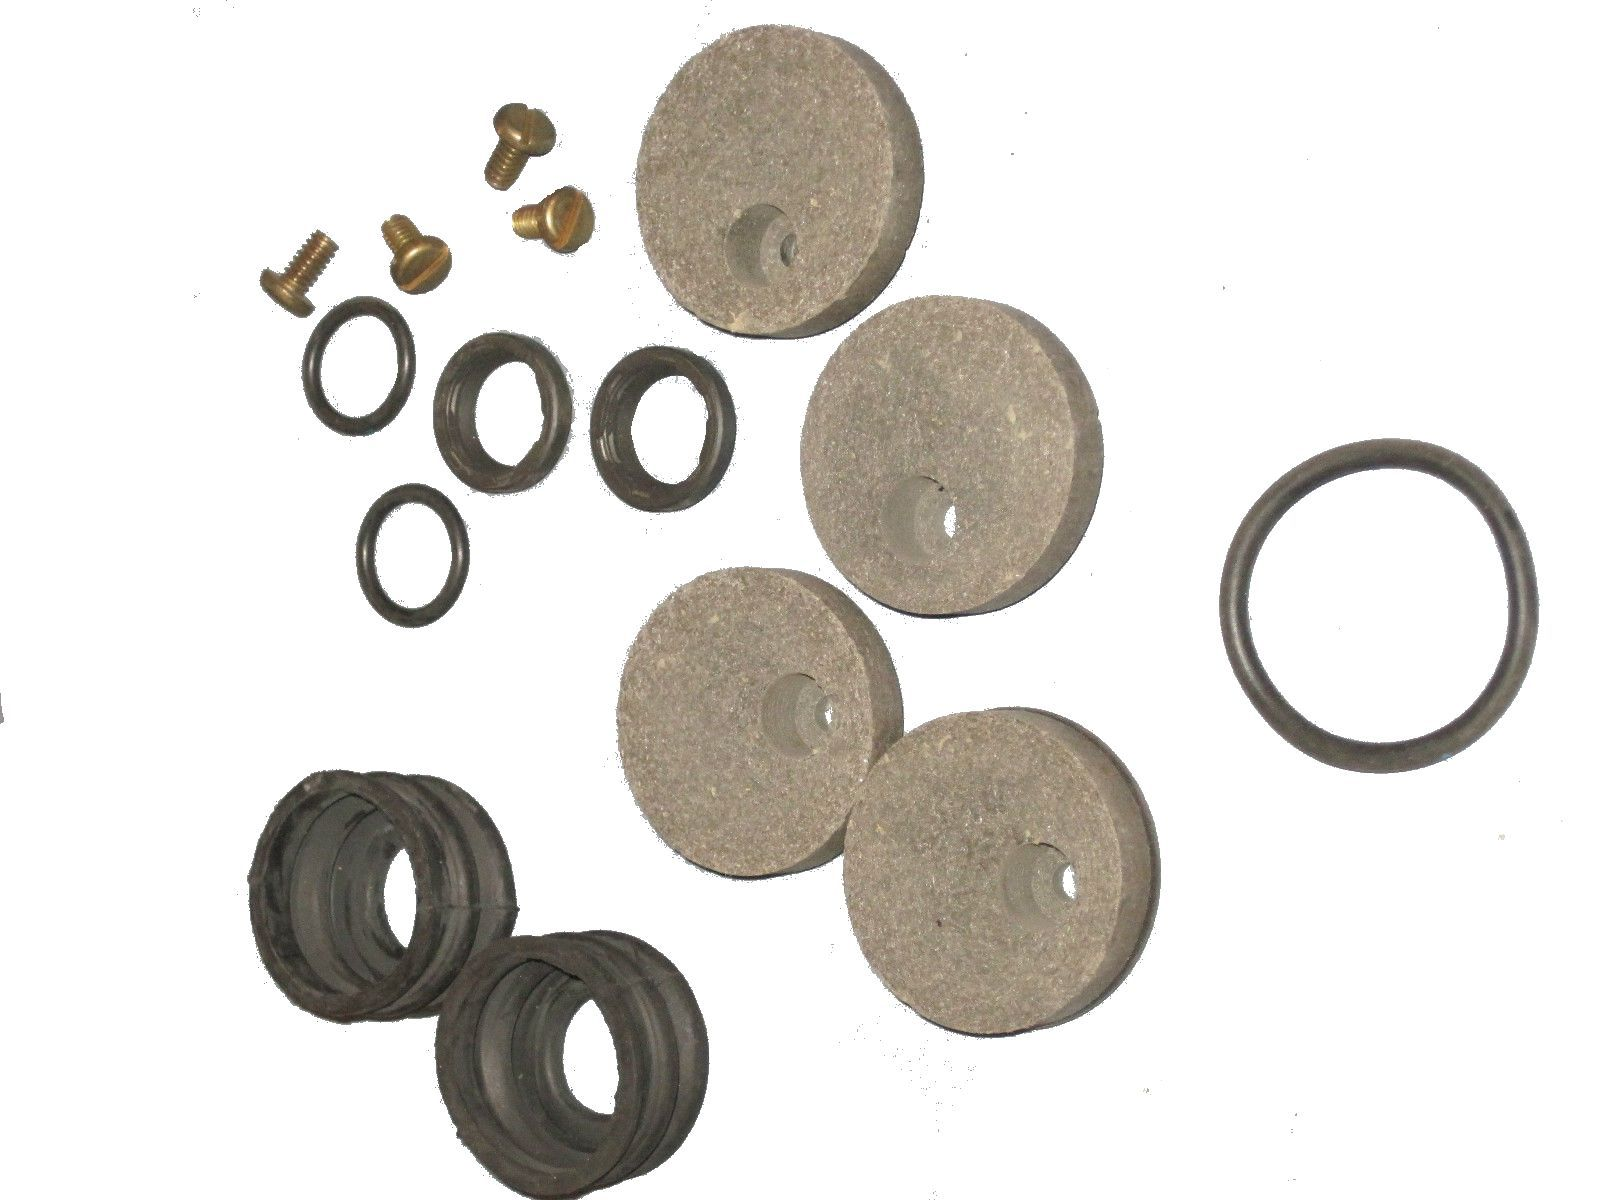 BK55-271 - Rear Brake Caliper Repair Kit, Round Pads